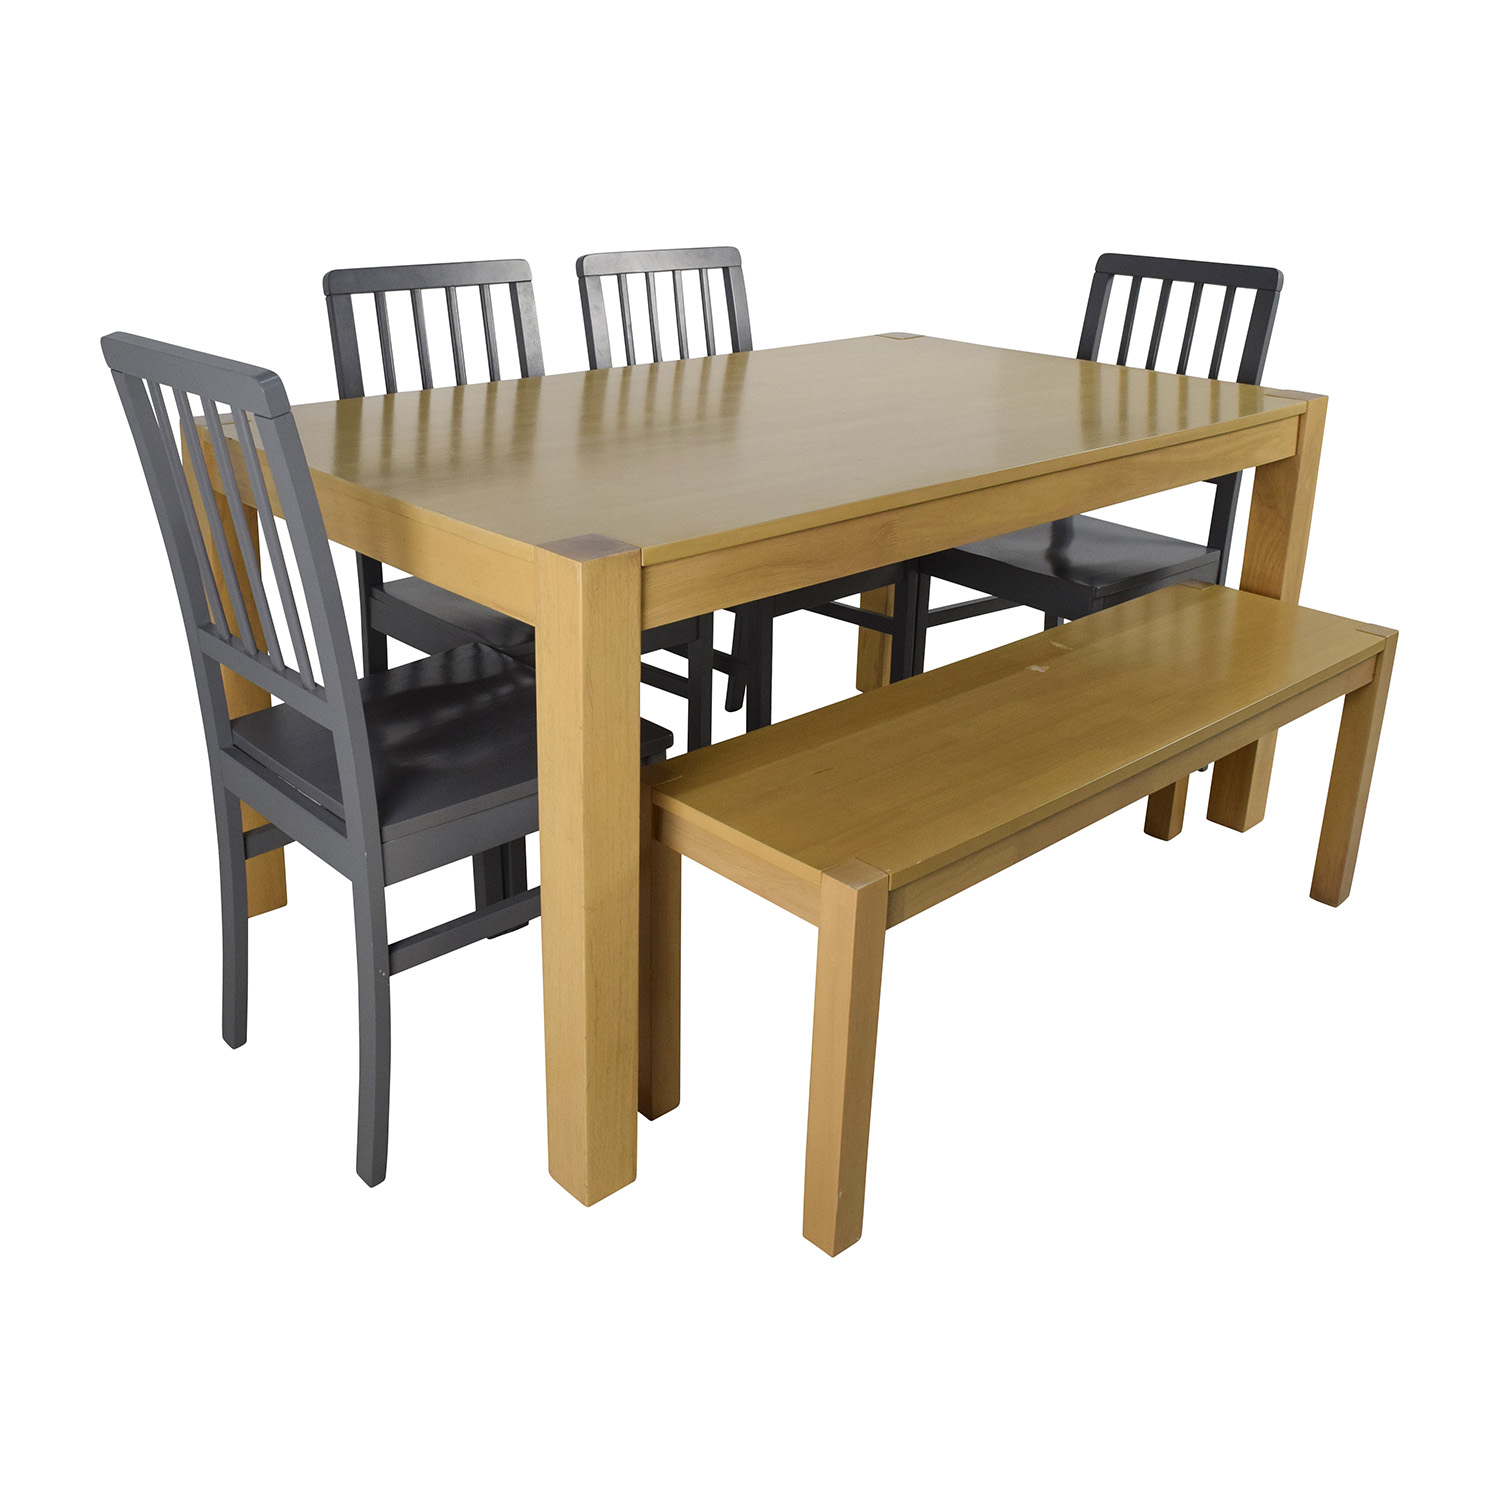 Shop Wooden Dinner Set With Bench Seat Online